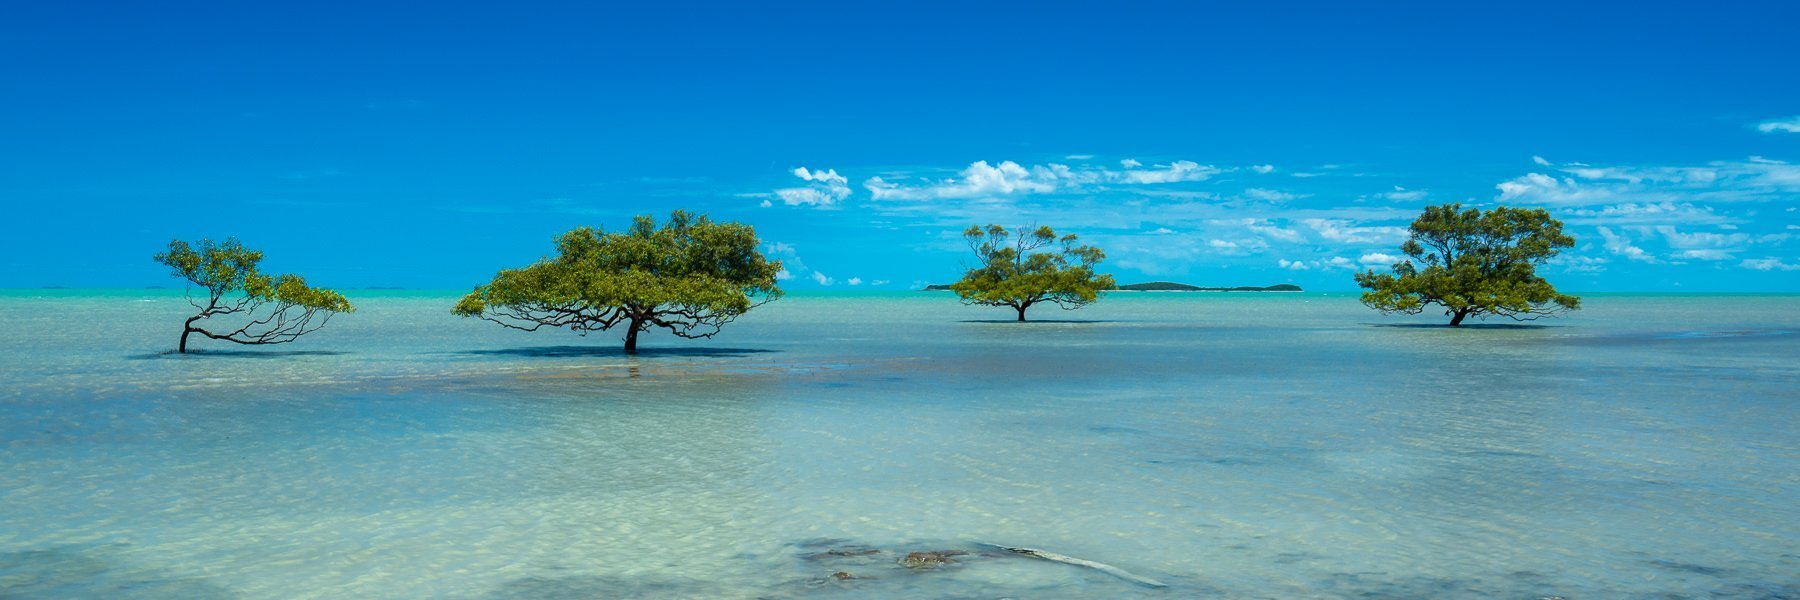 Four trees in shallow water with aqua blue ocean and cloudy blue sky behind